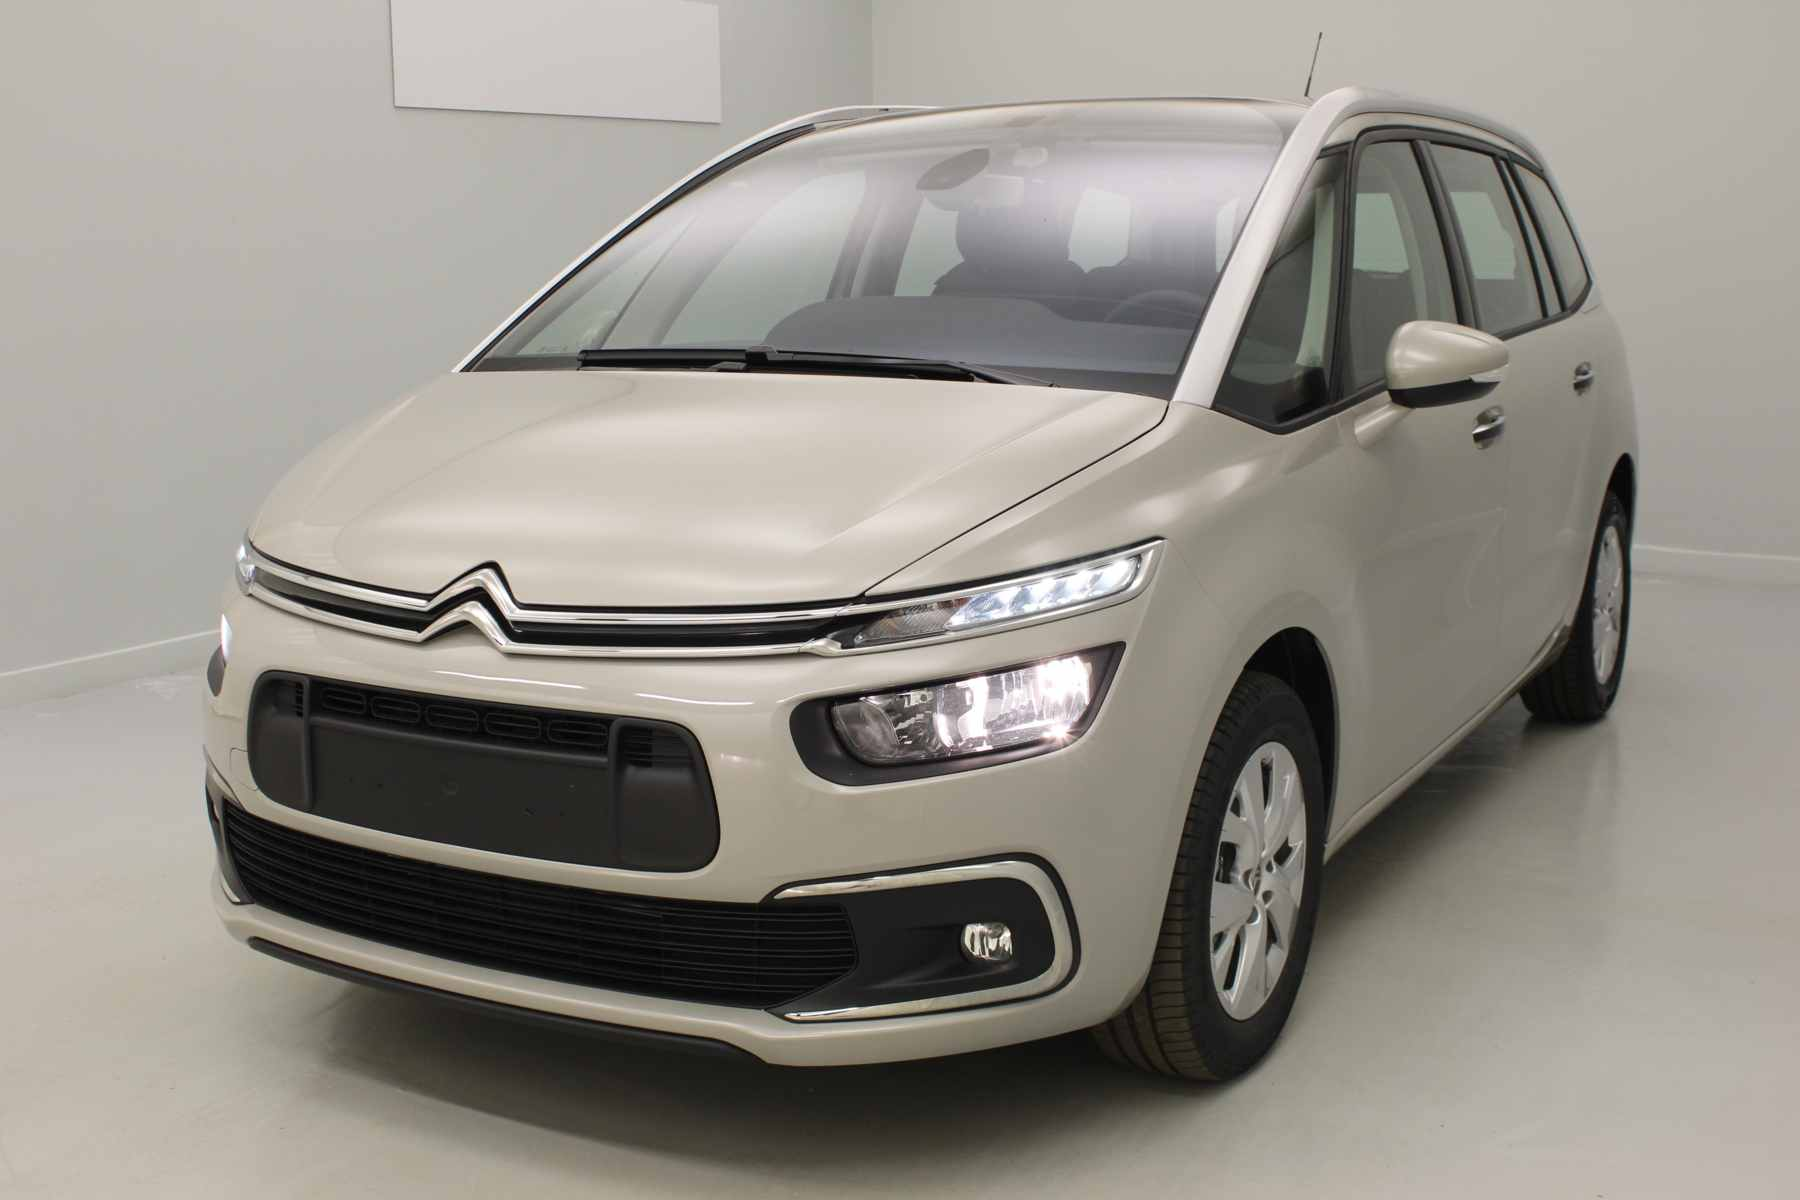 CITROEN Grand C4 Picasso BlueHDi 120 S&S Feel Sable + Accès démarrage mains libres + Alarme avec options